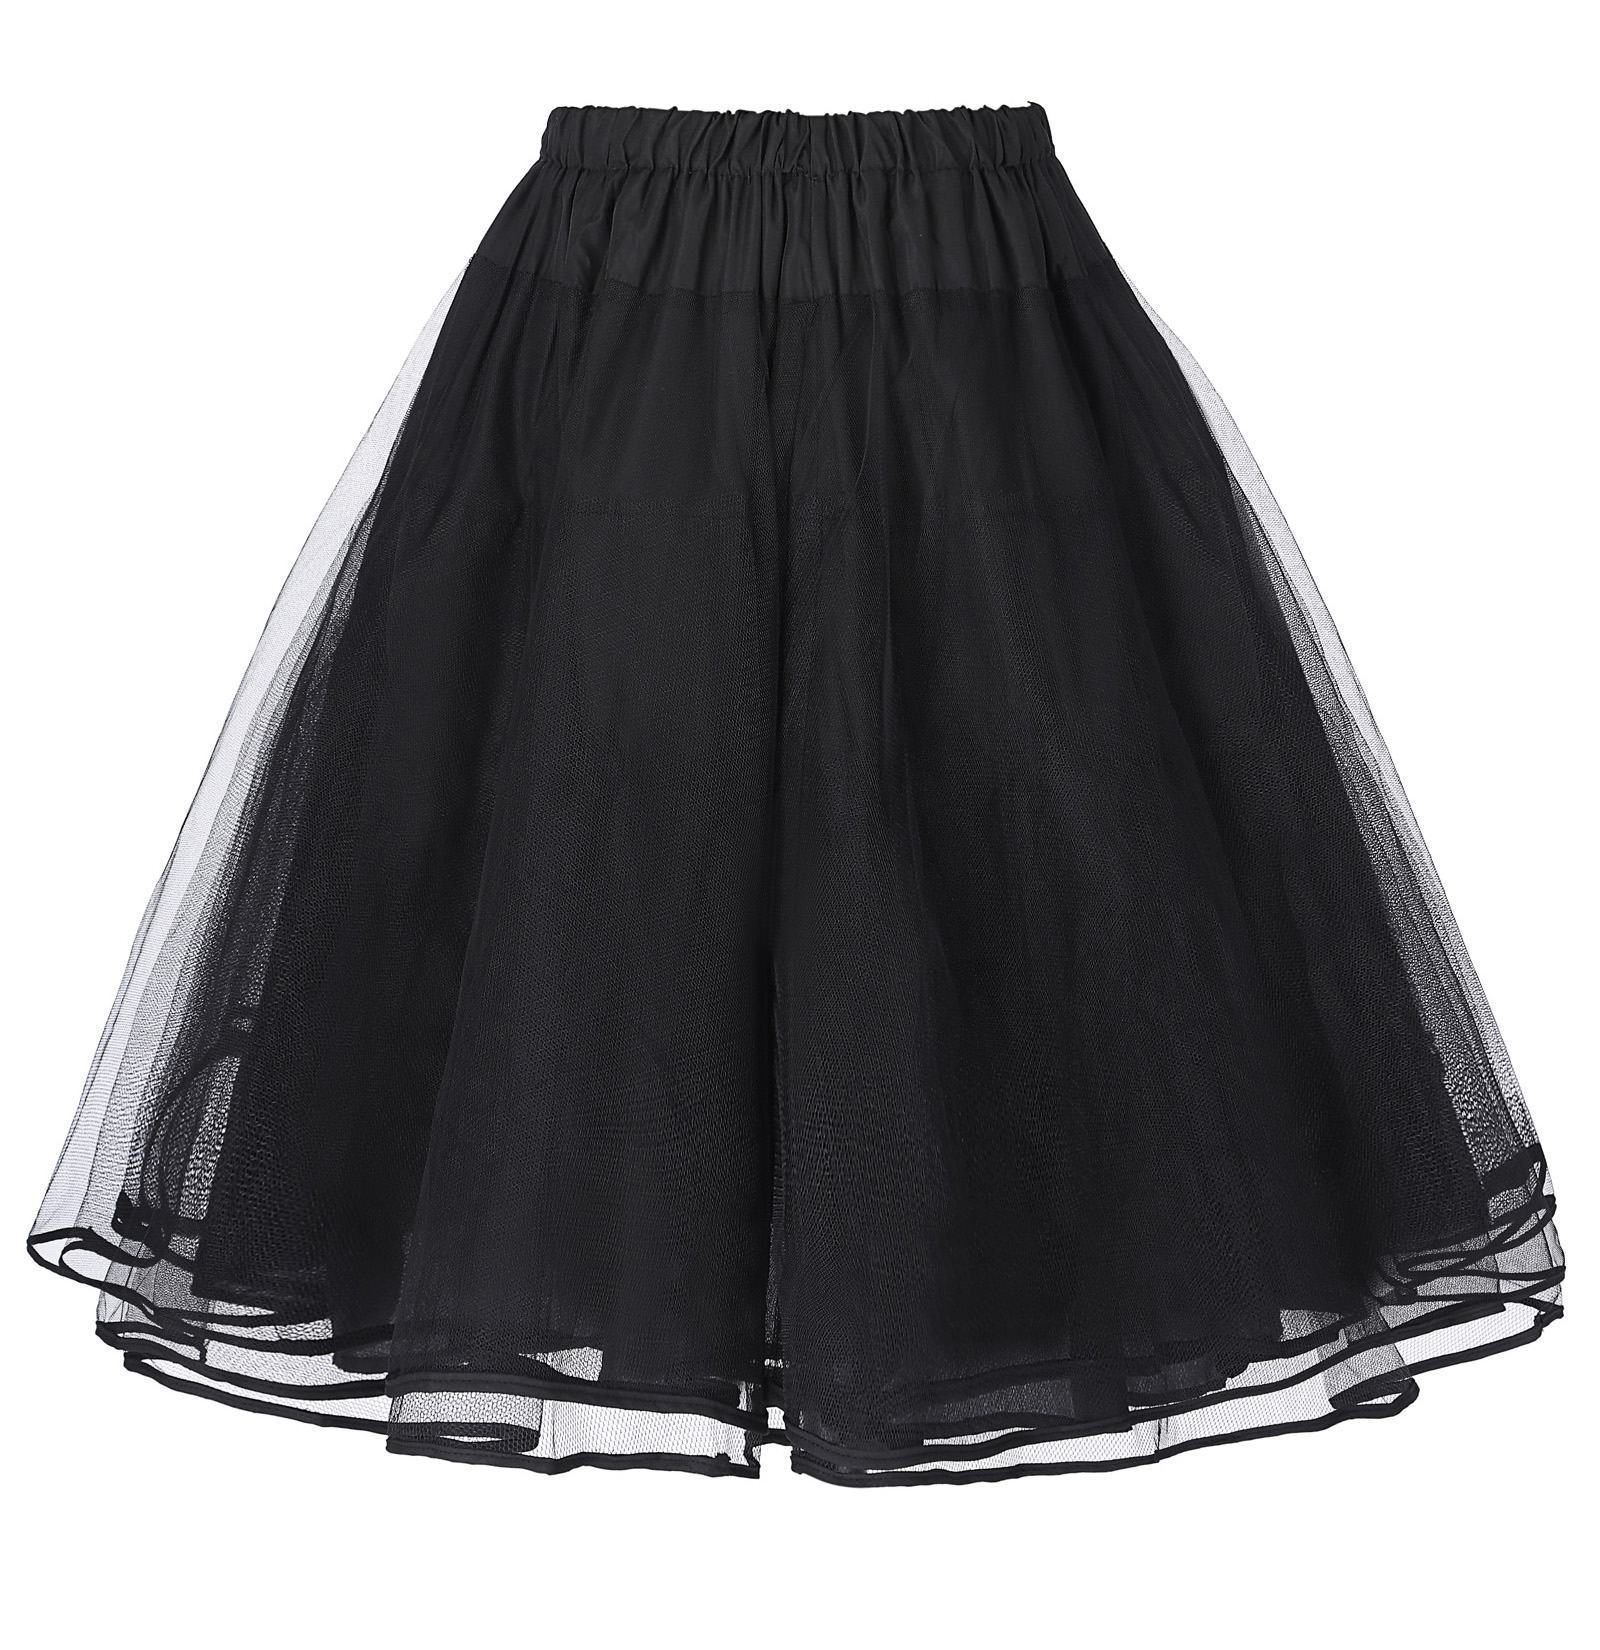 7eaba3aab2 இ Big promotion for lolita skirt gothic black and get free shipping ...